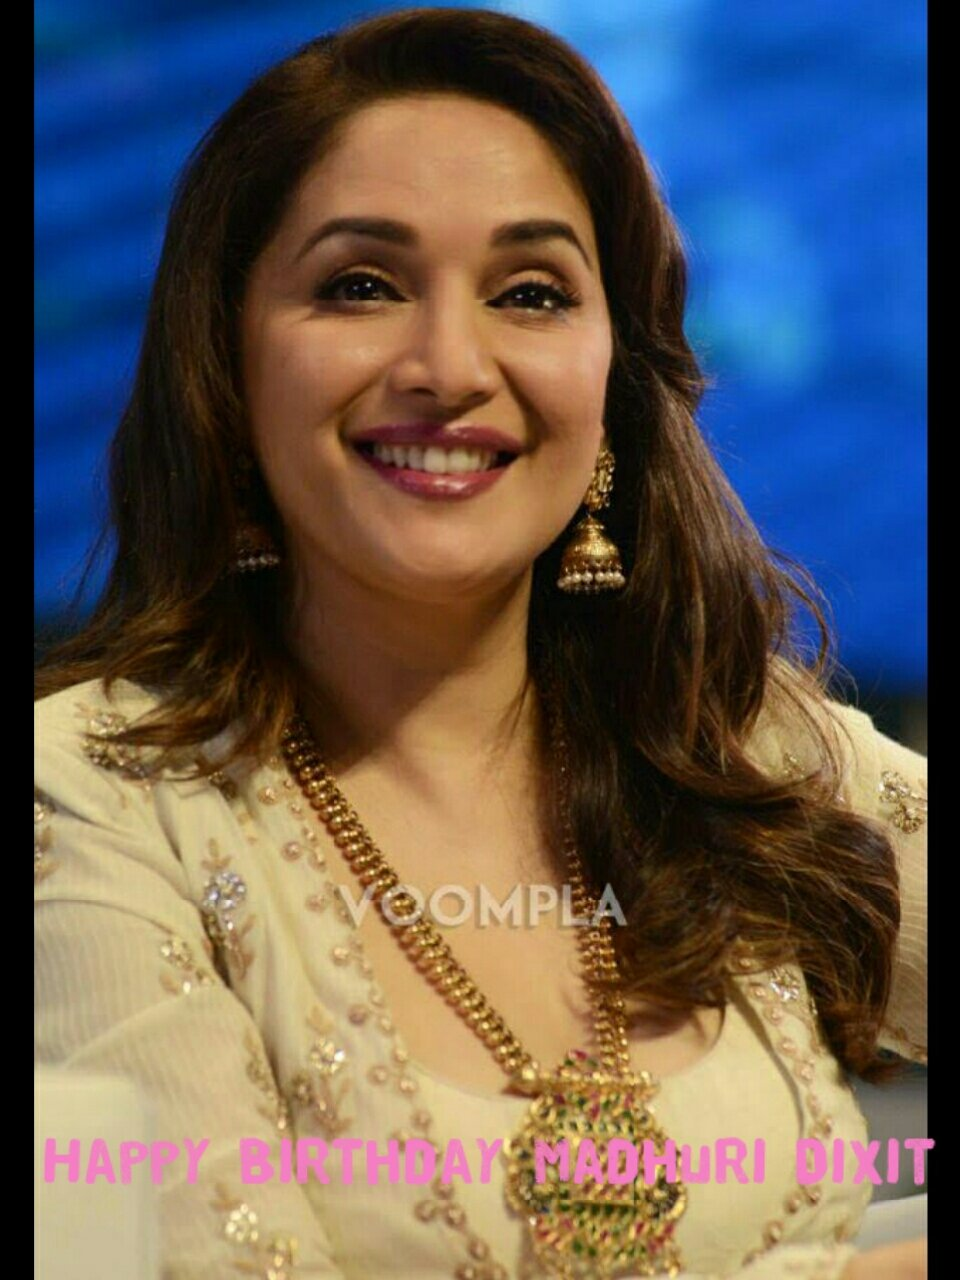 1 day to go!! 15.05.2017!  Happy Birthday Madhuri Dixit